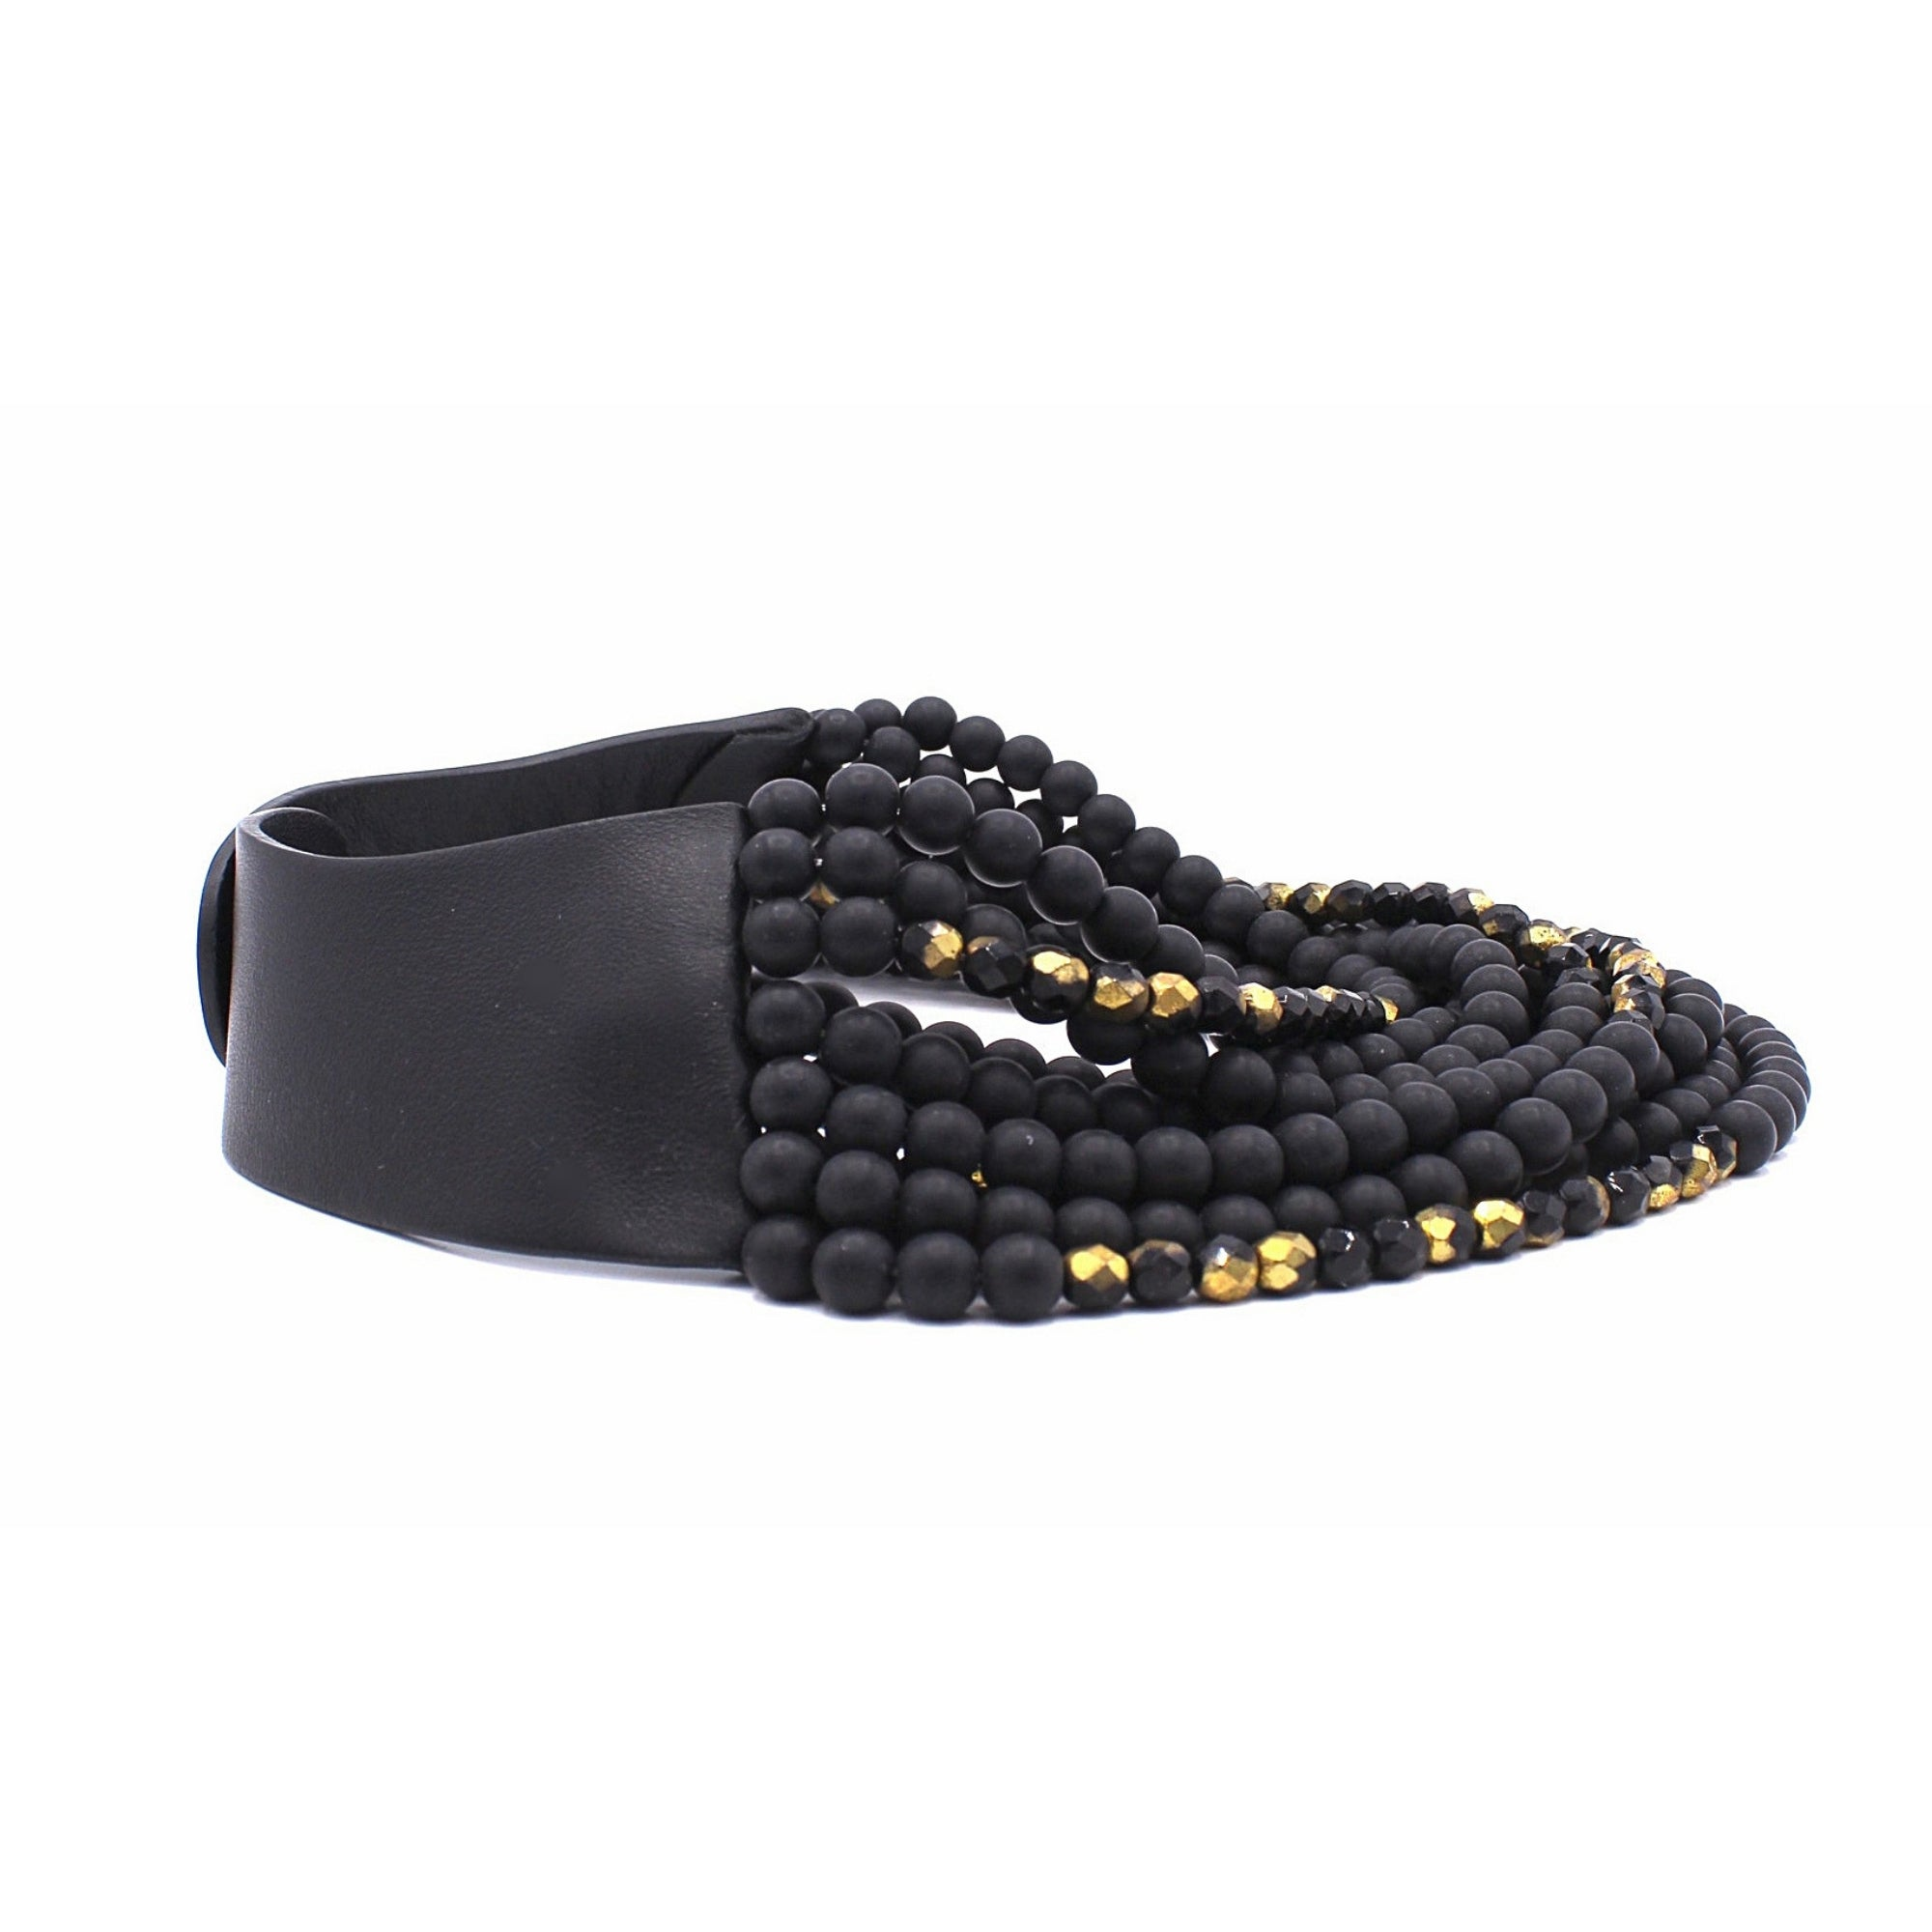 Black & Gold - Fairchild Baldwin - Handmade in Italy